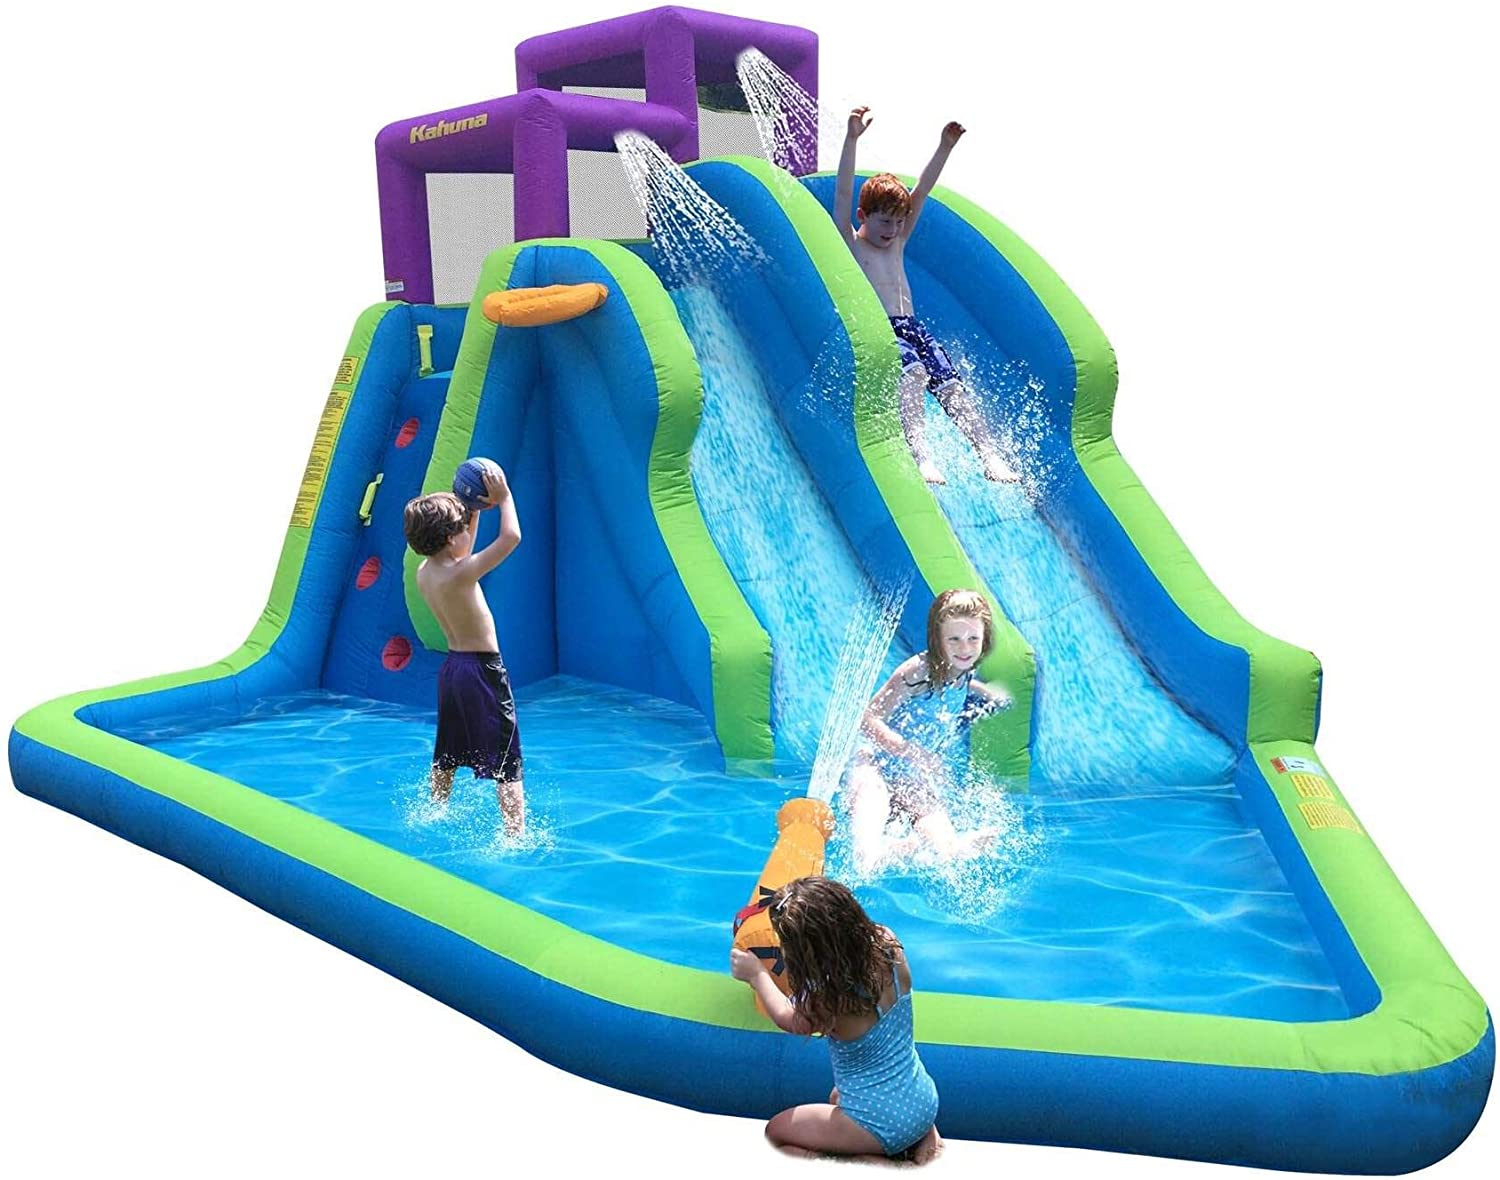 Top 11 Best Water Slide Pools Inflatable (2020 Reviews) 4